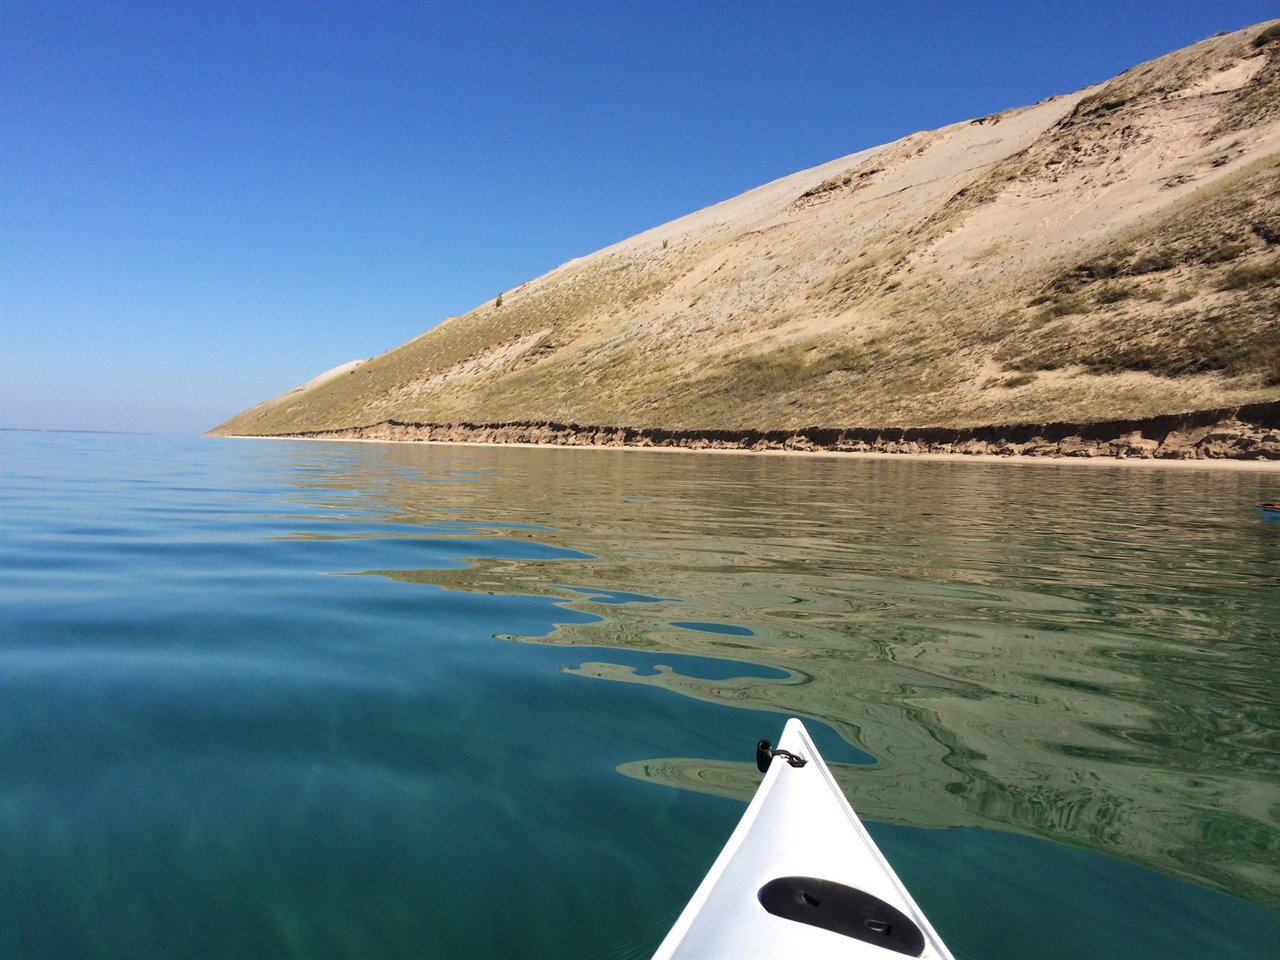 Kayaking near Traverse City